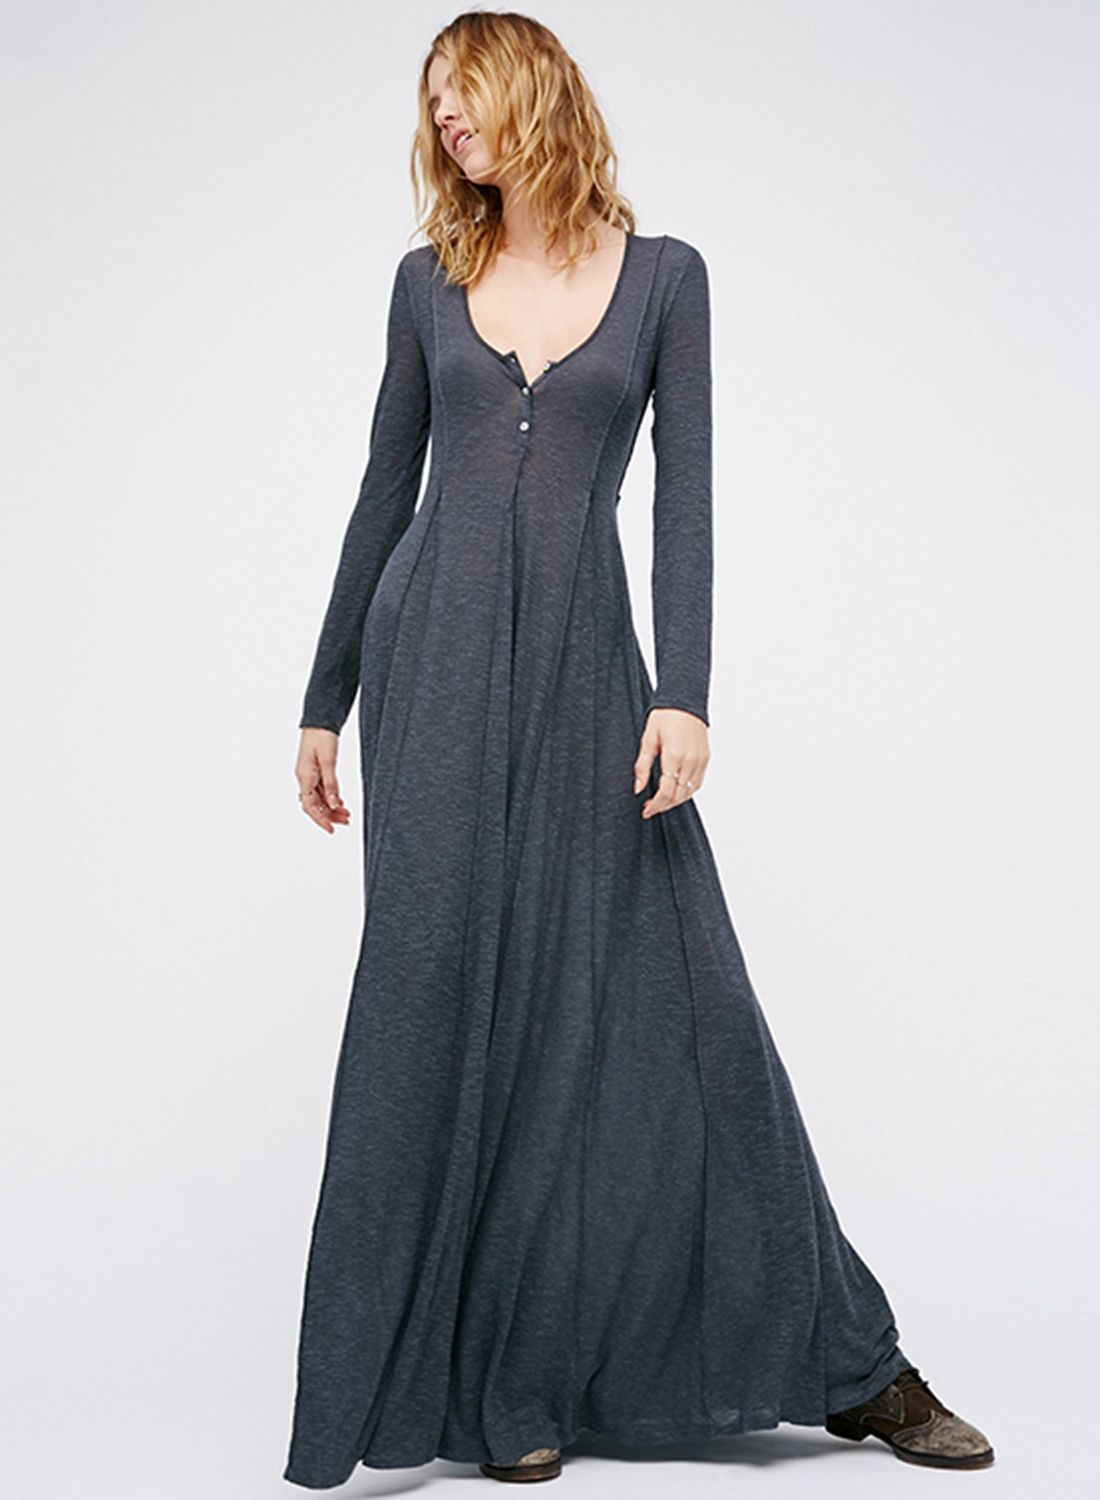 Scoop neck long sleeve maxi dress sewing patterns pinterest